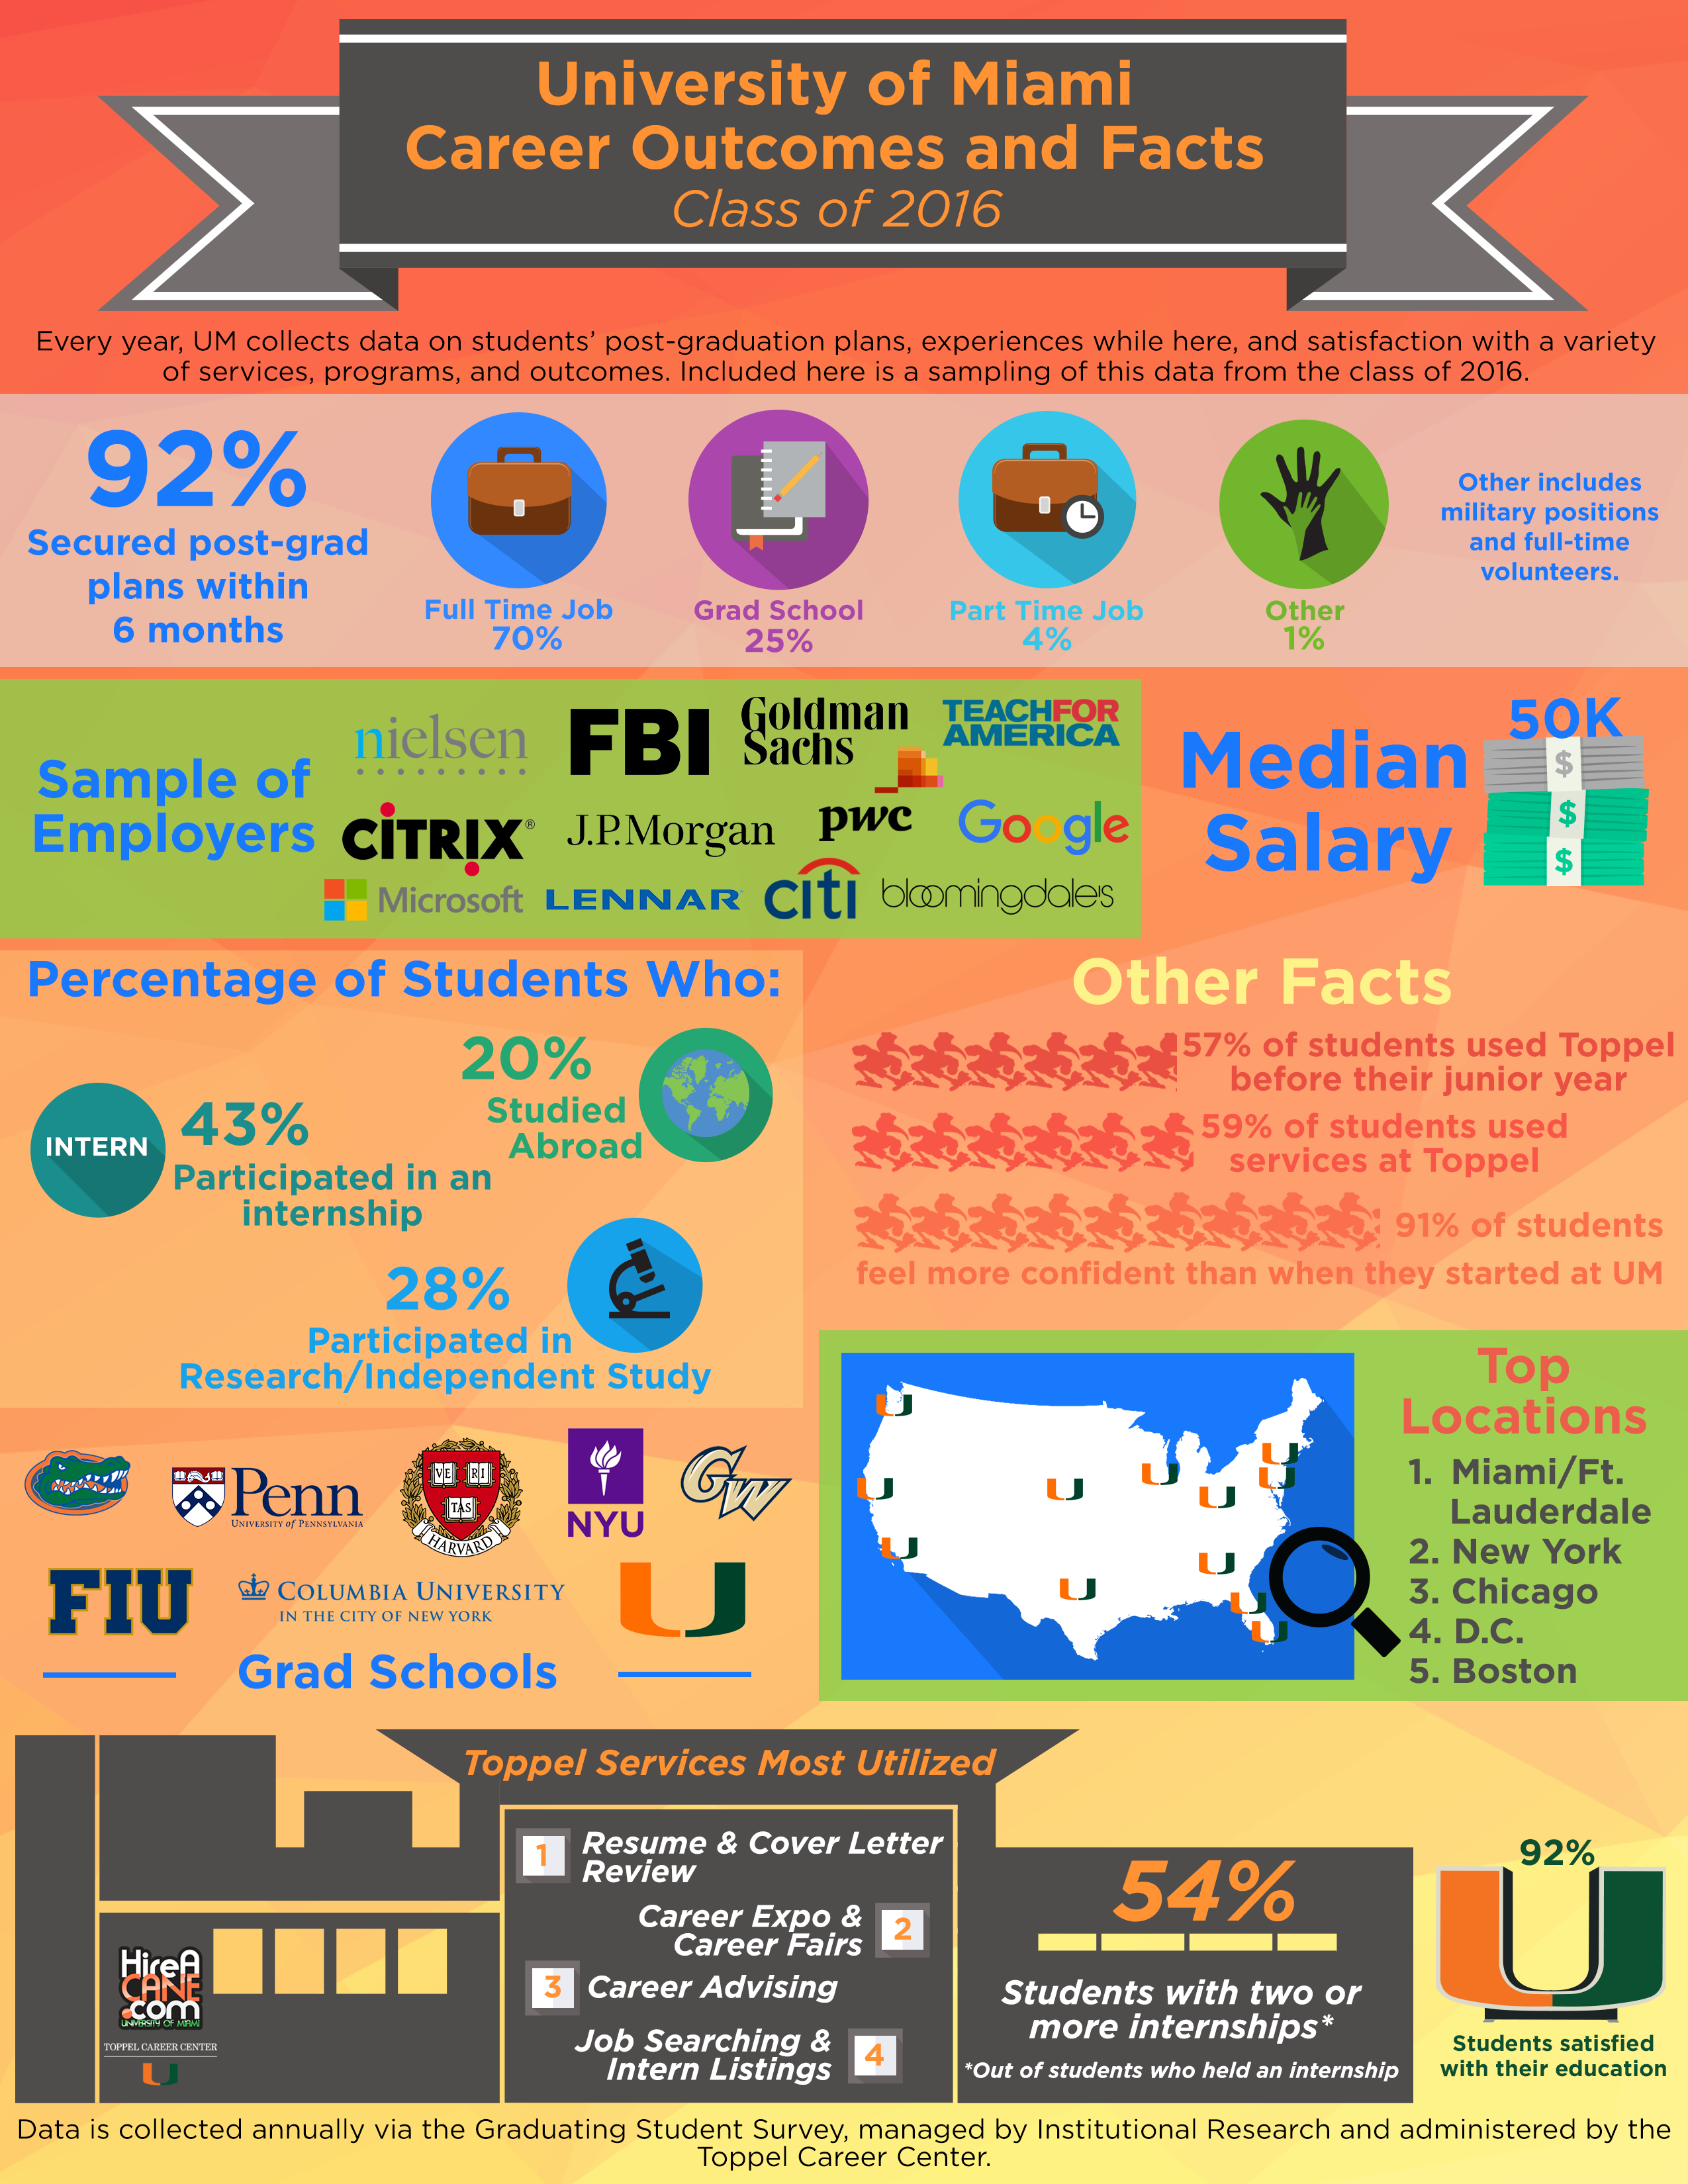 University of Miami Career Outcomes Infographic for the class of 2015